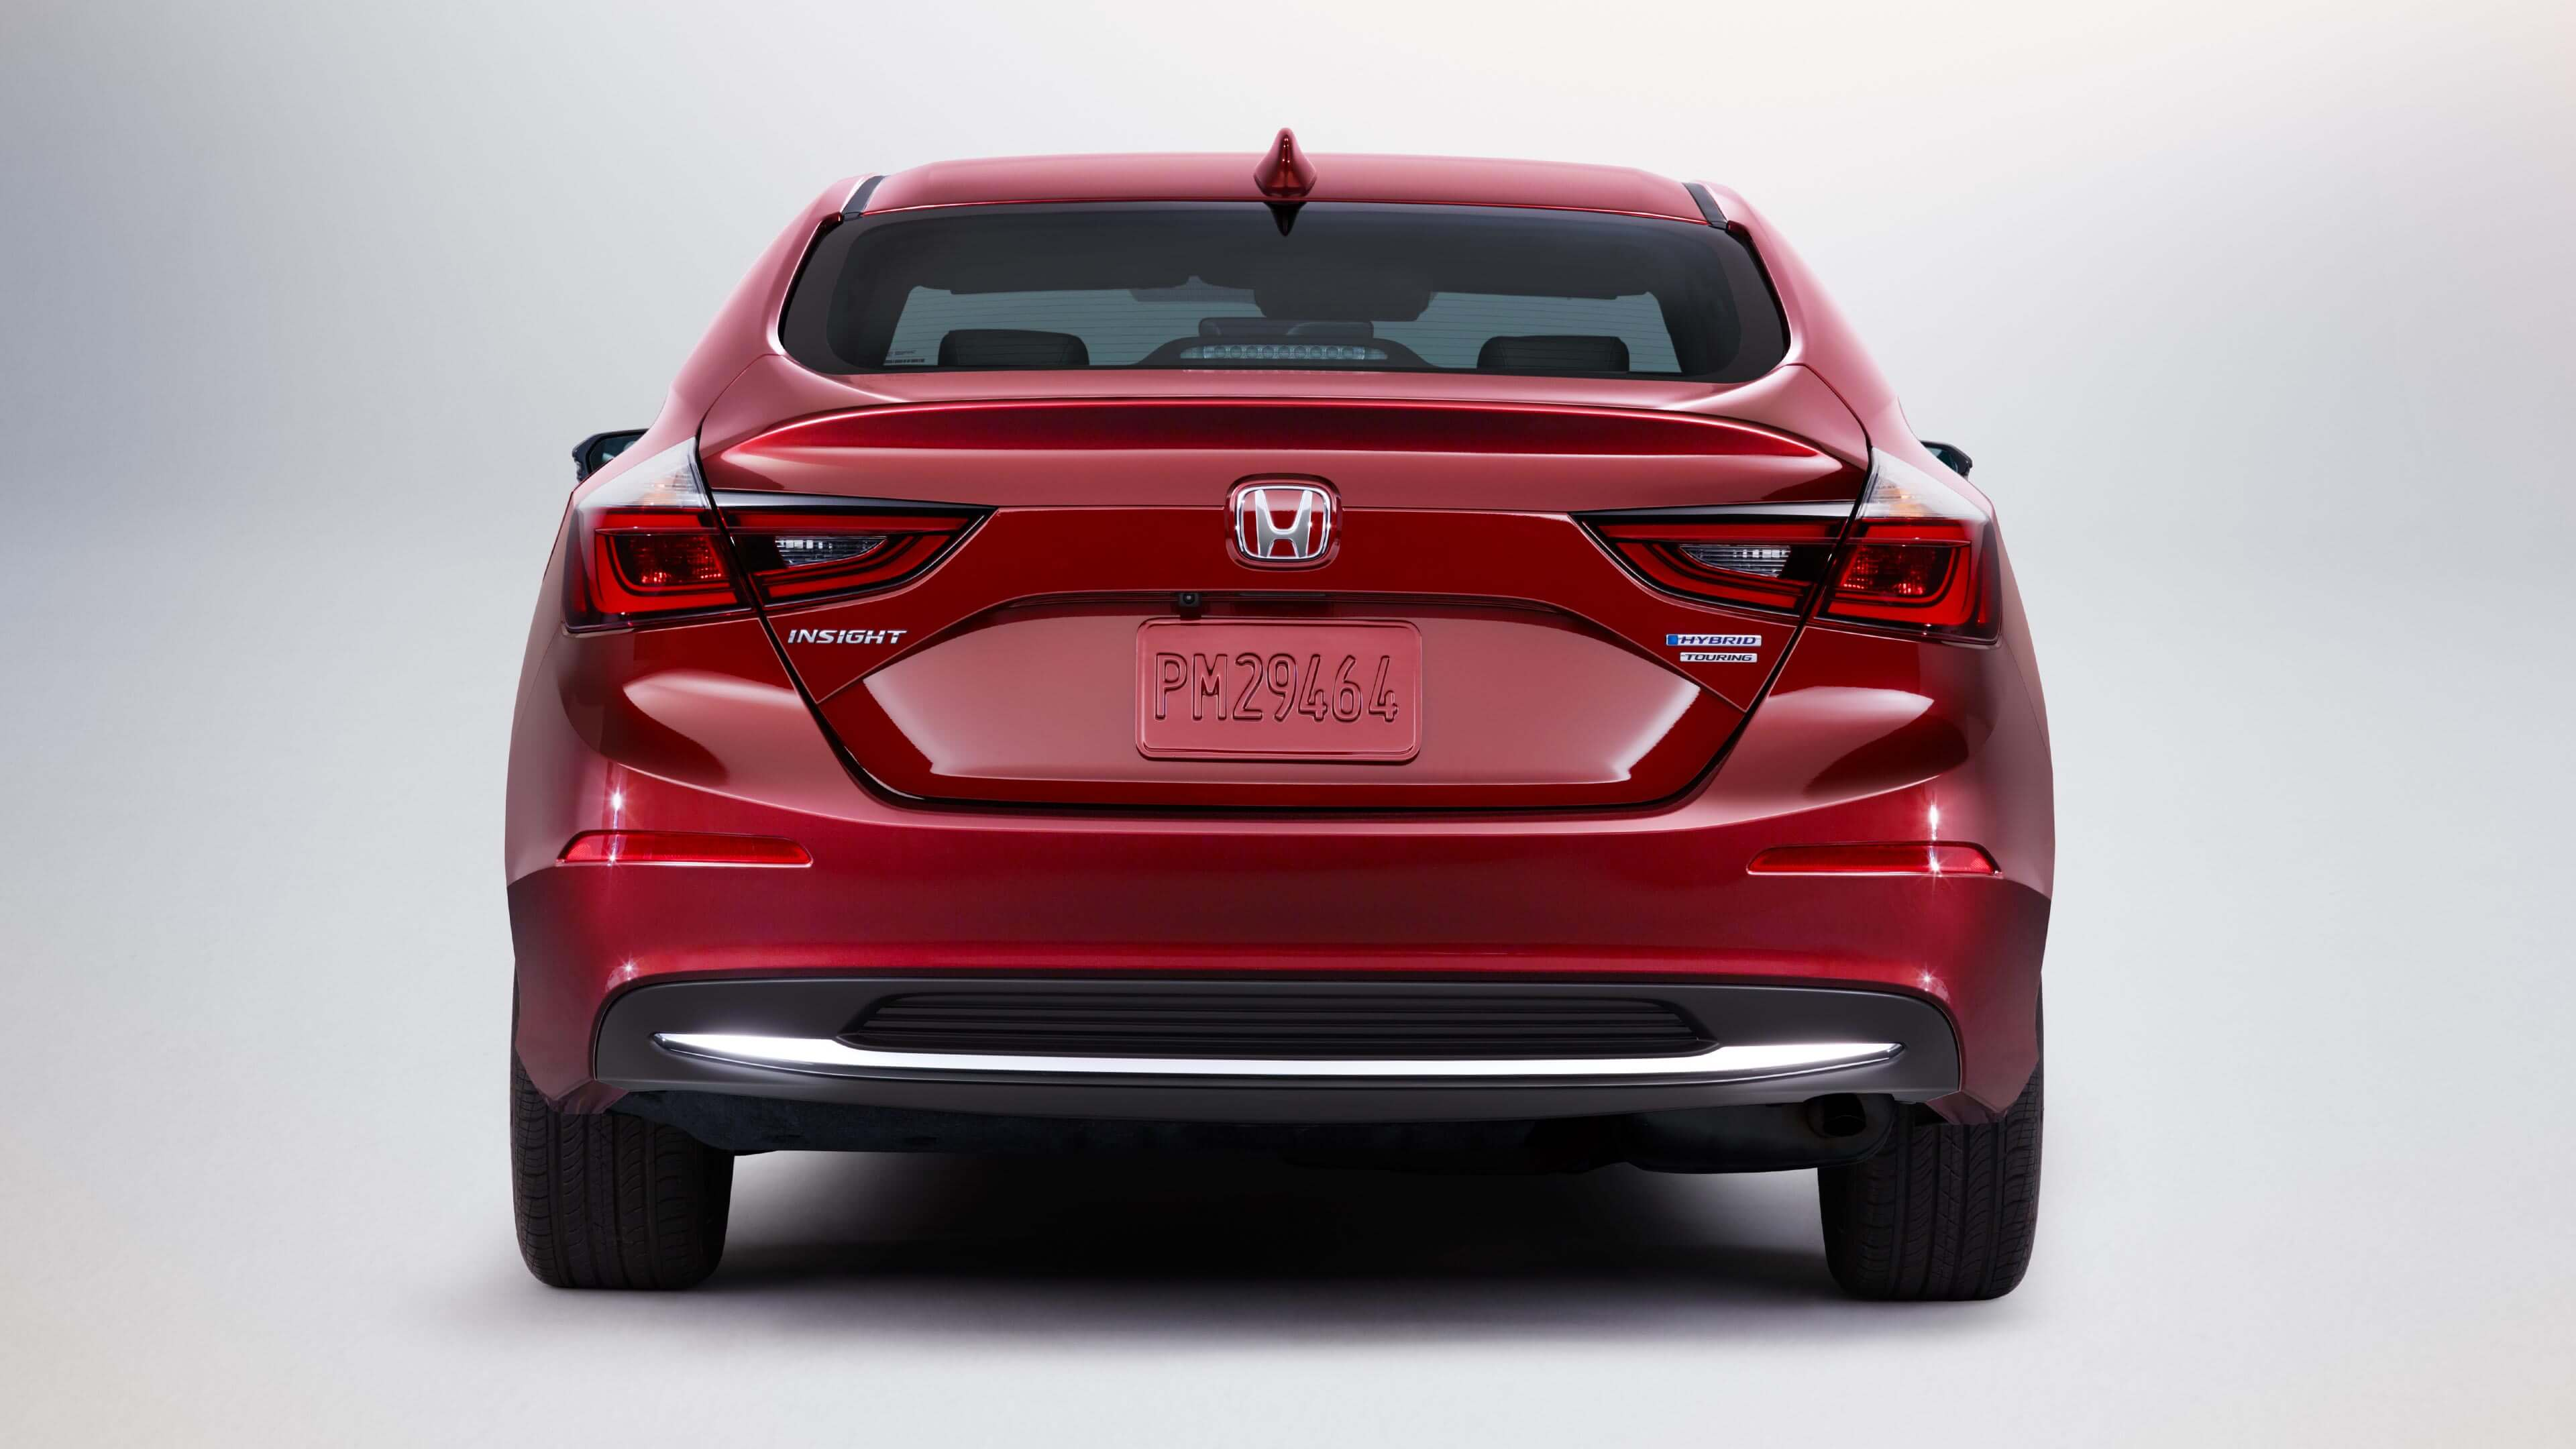 2020 Honda Insight rear profile